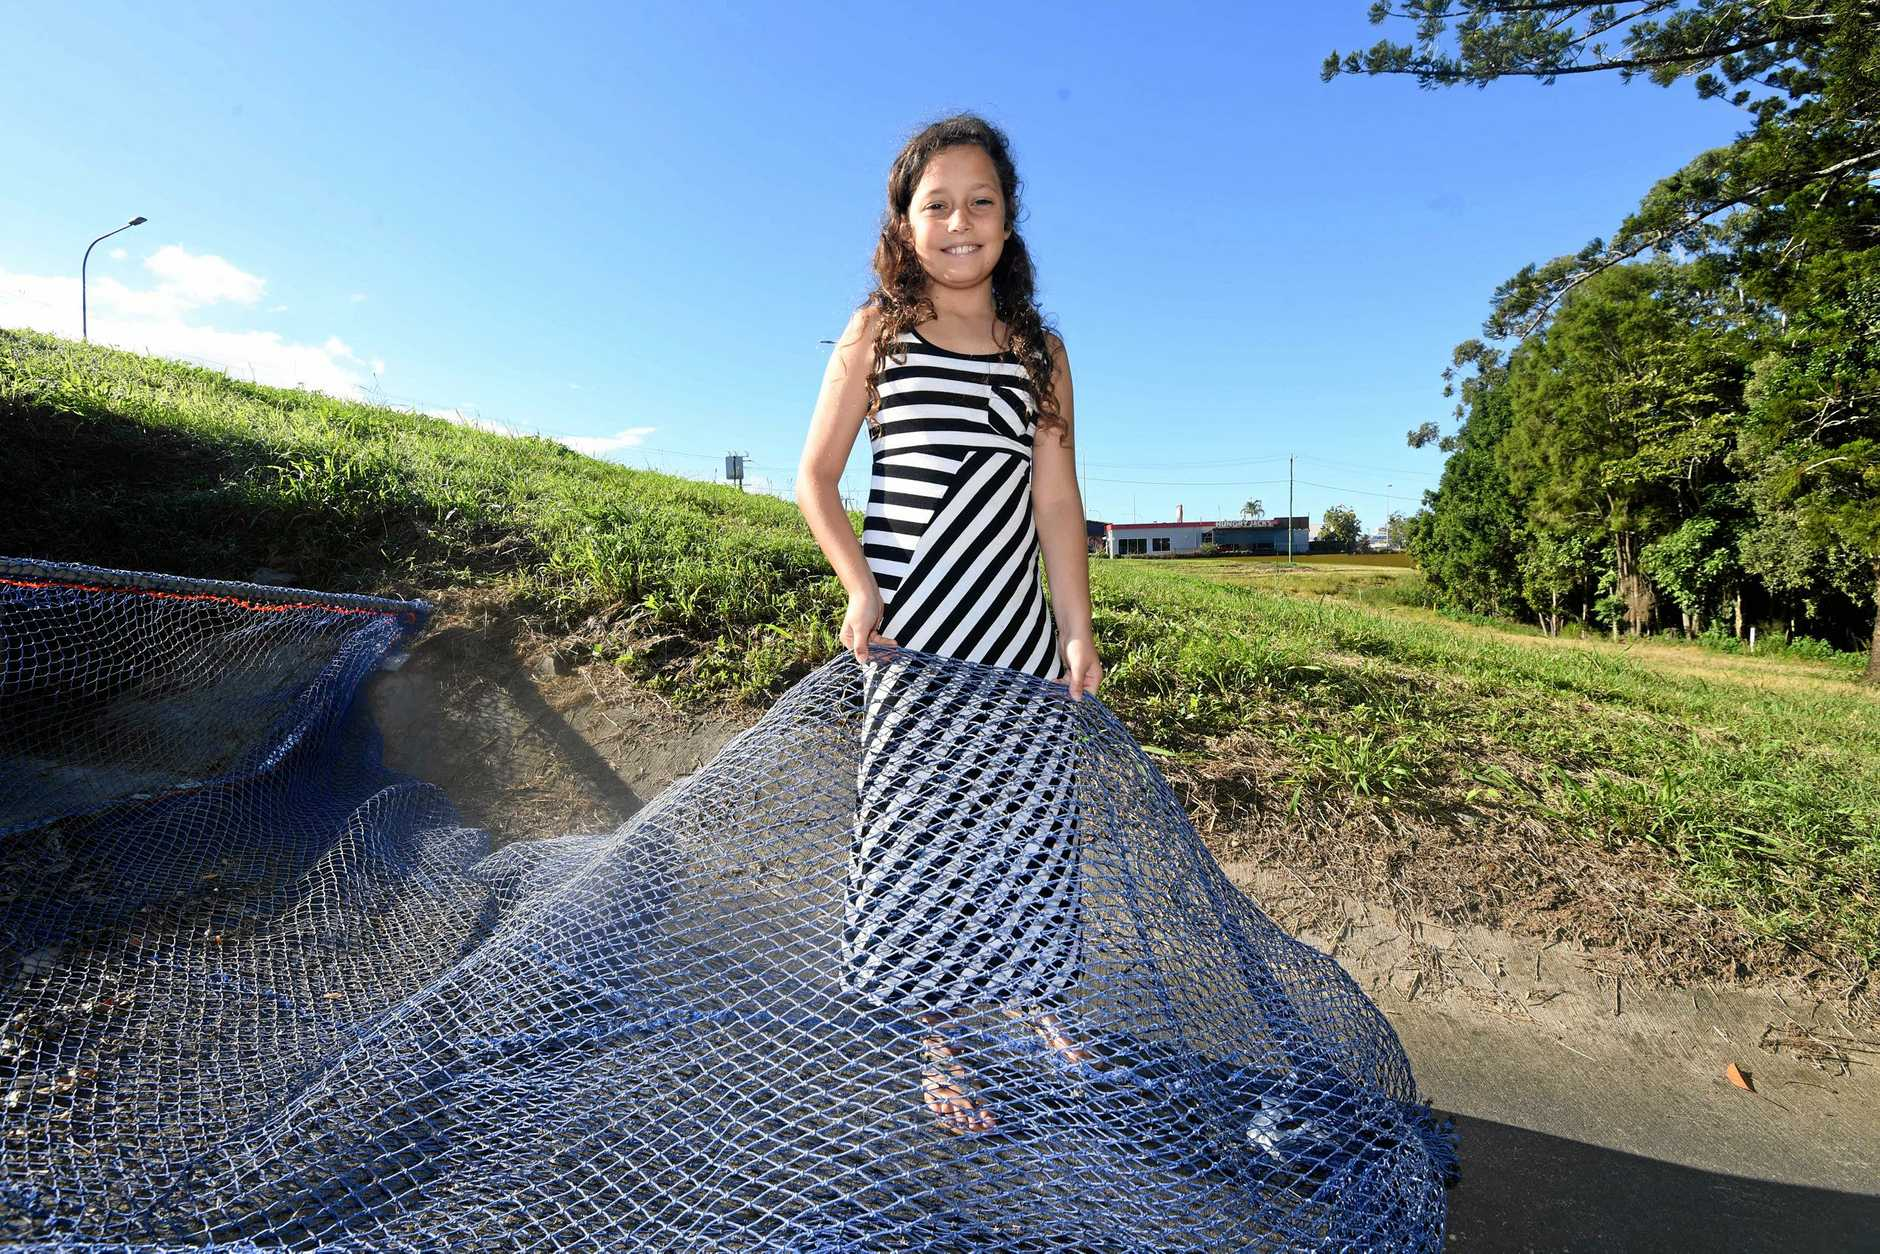 Atua Bentley of Cooloola Cove helps demonstrate the cleaner oceans drain filter developed by her father, Paul Bentley and road tested by Gympie Regional Council.